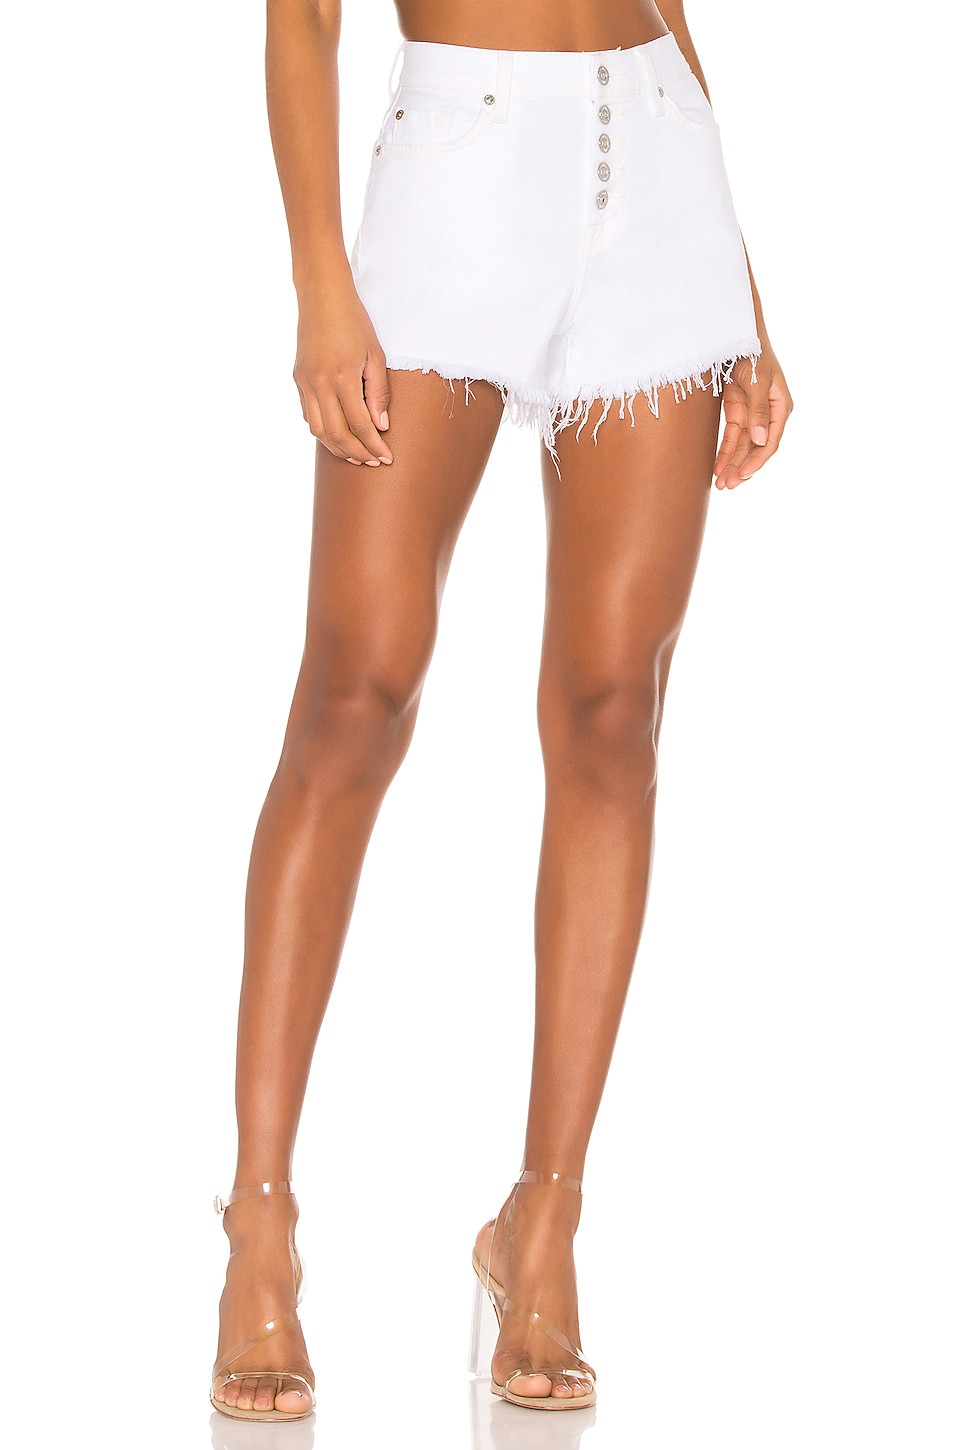 7 For All Mankind High Waist Cut Off Short in White Runaway